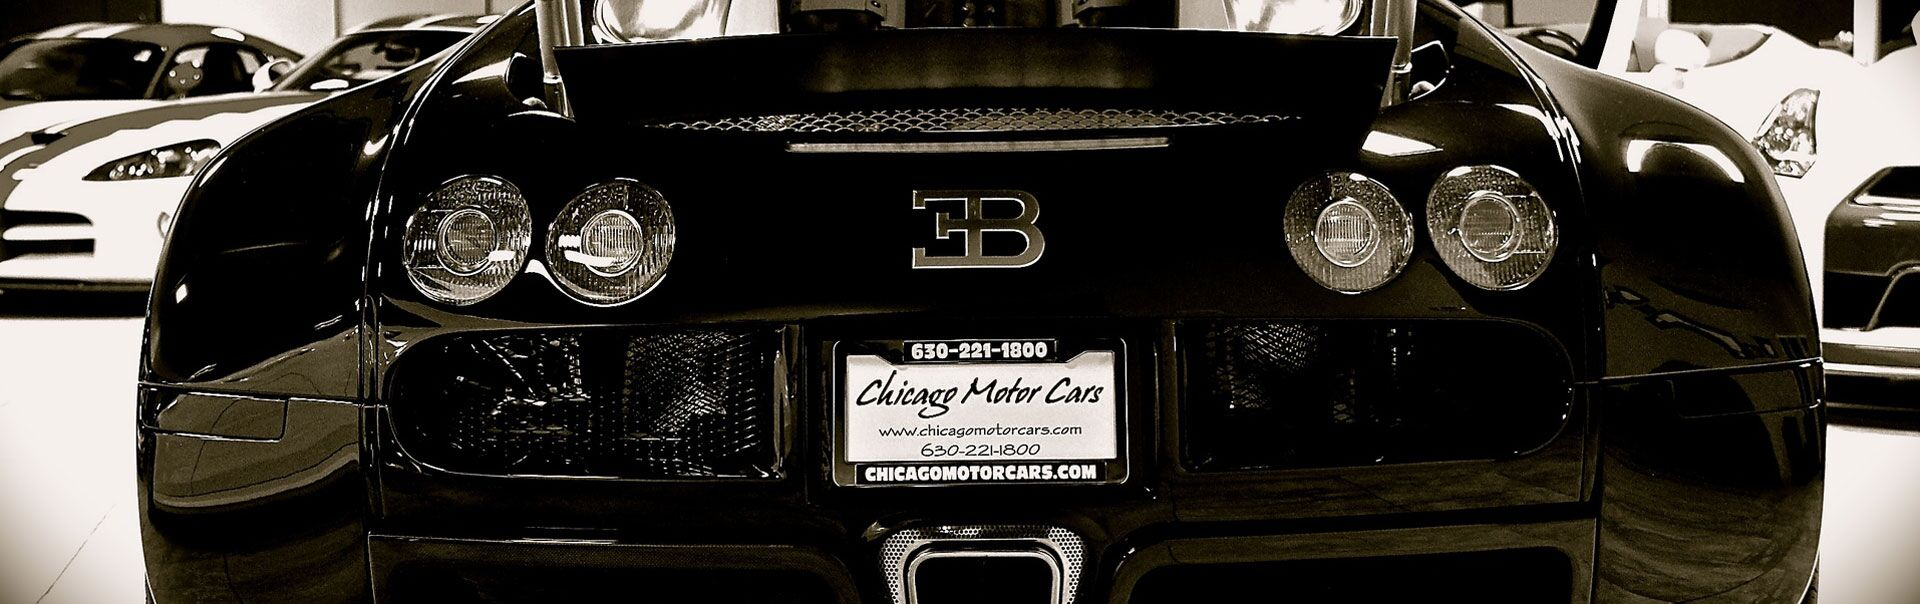 Chicago motor vehicle registration vehicle ideas for Chicago department of motor vehicles